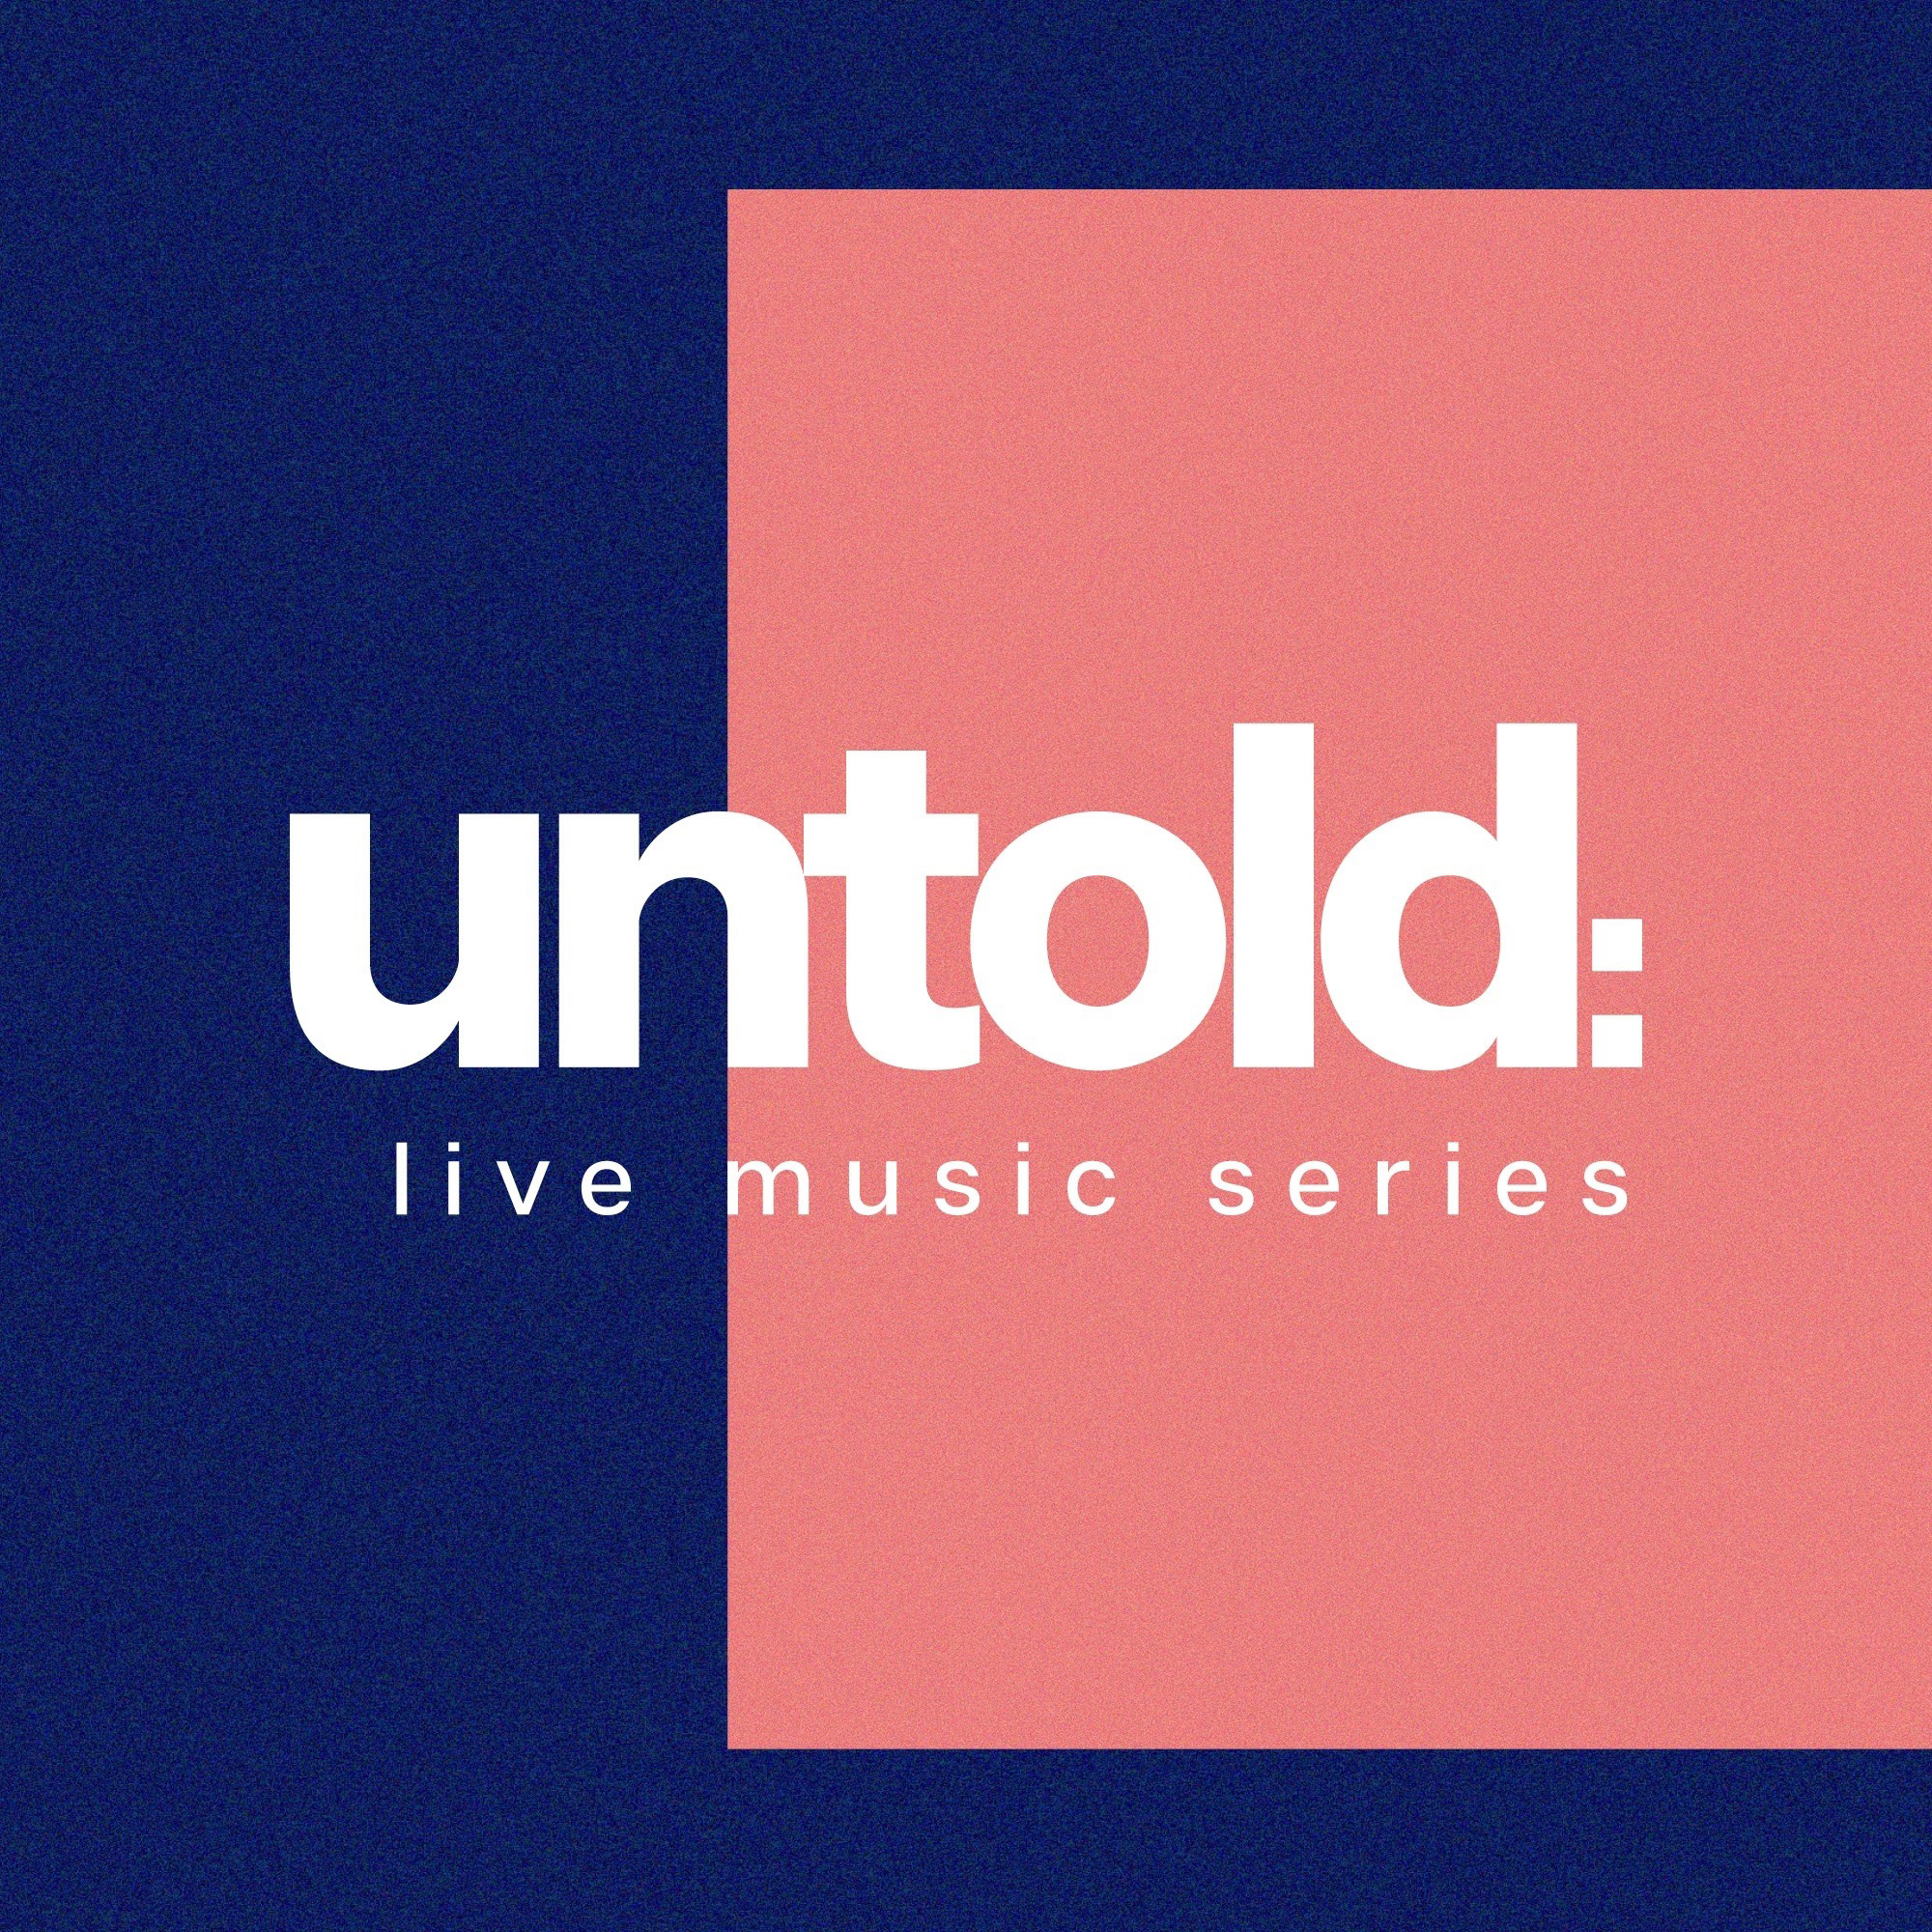 Untold: Monthly Live Music Series brining independent artists of ALL genres together offering up original material monthly hosted by  I AM KHAY  at  The Hideout Toronto . Doors 8pm/ Show Starts 8:30pm/ New Artists monthly... Tix: eventbrite.ca $8.77 Early Bird with Comp Pint/ $12 Door